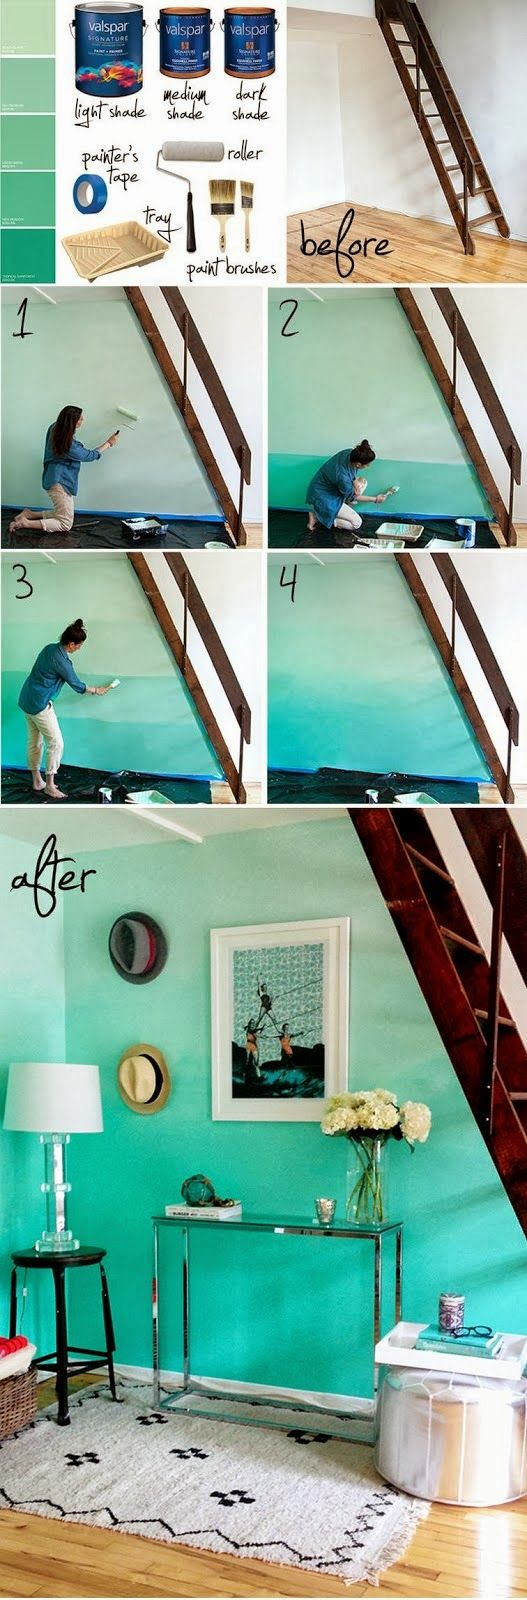 Ombre walls DIY project